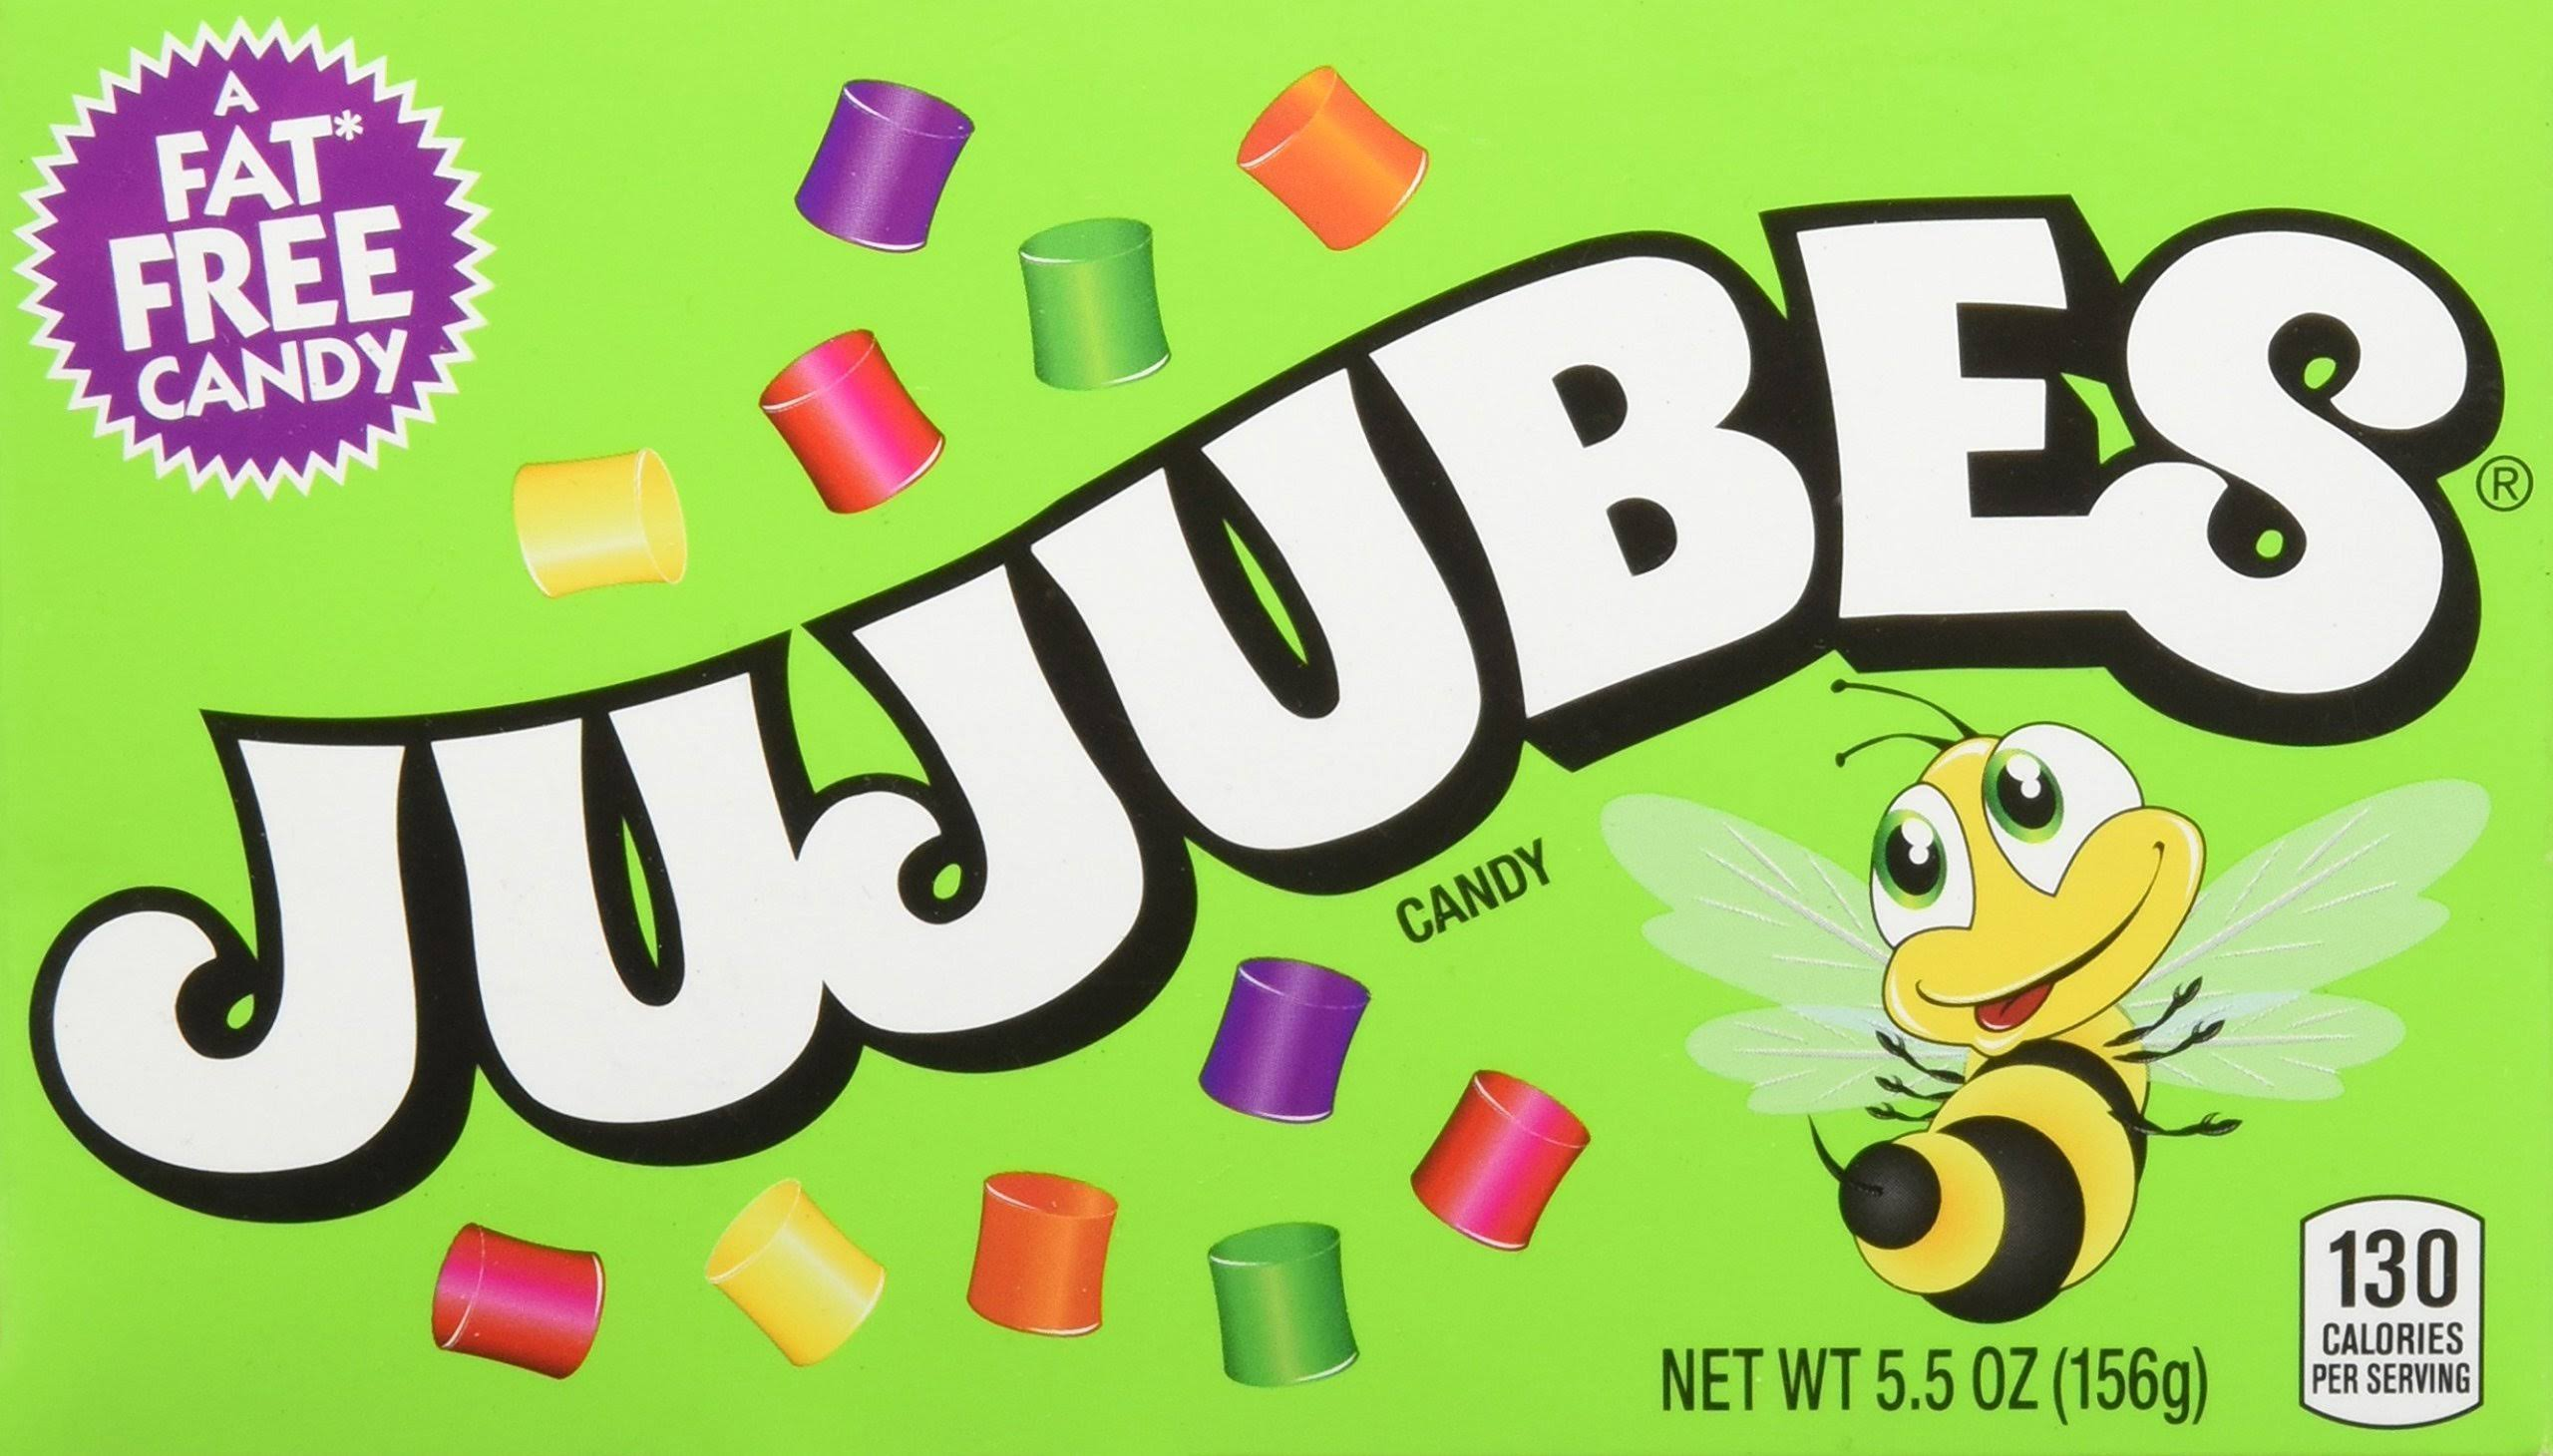 Jujubes Original Candy - 5.5 oz